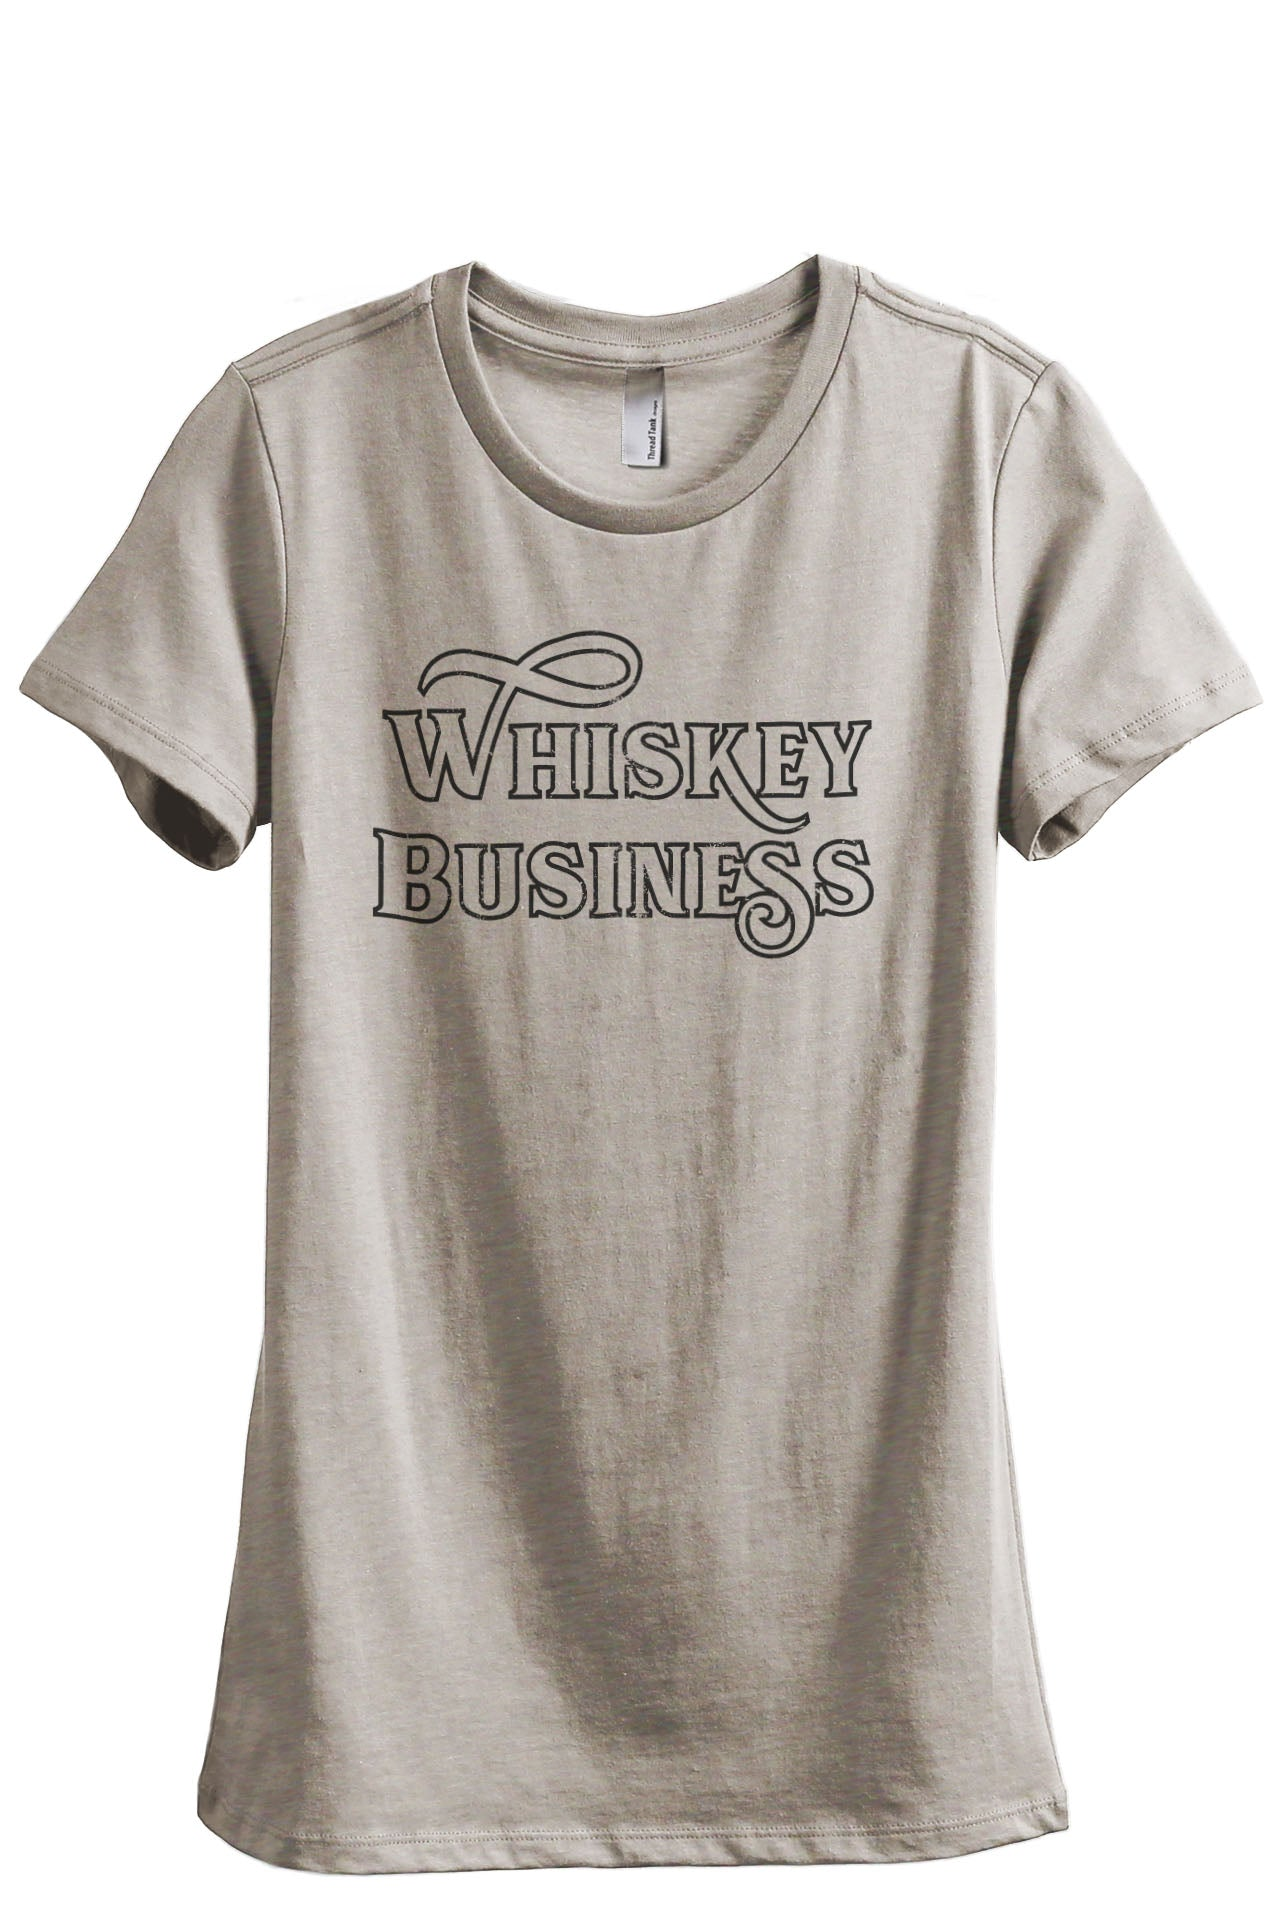 Whiskey Business Women's Relaxed Crewneck T-Shirt Top Tee Heather Tan